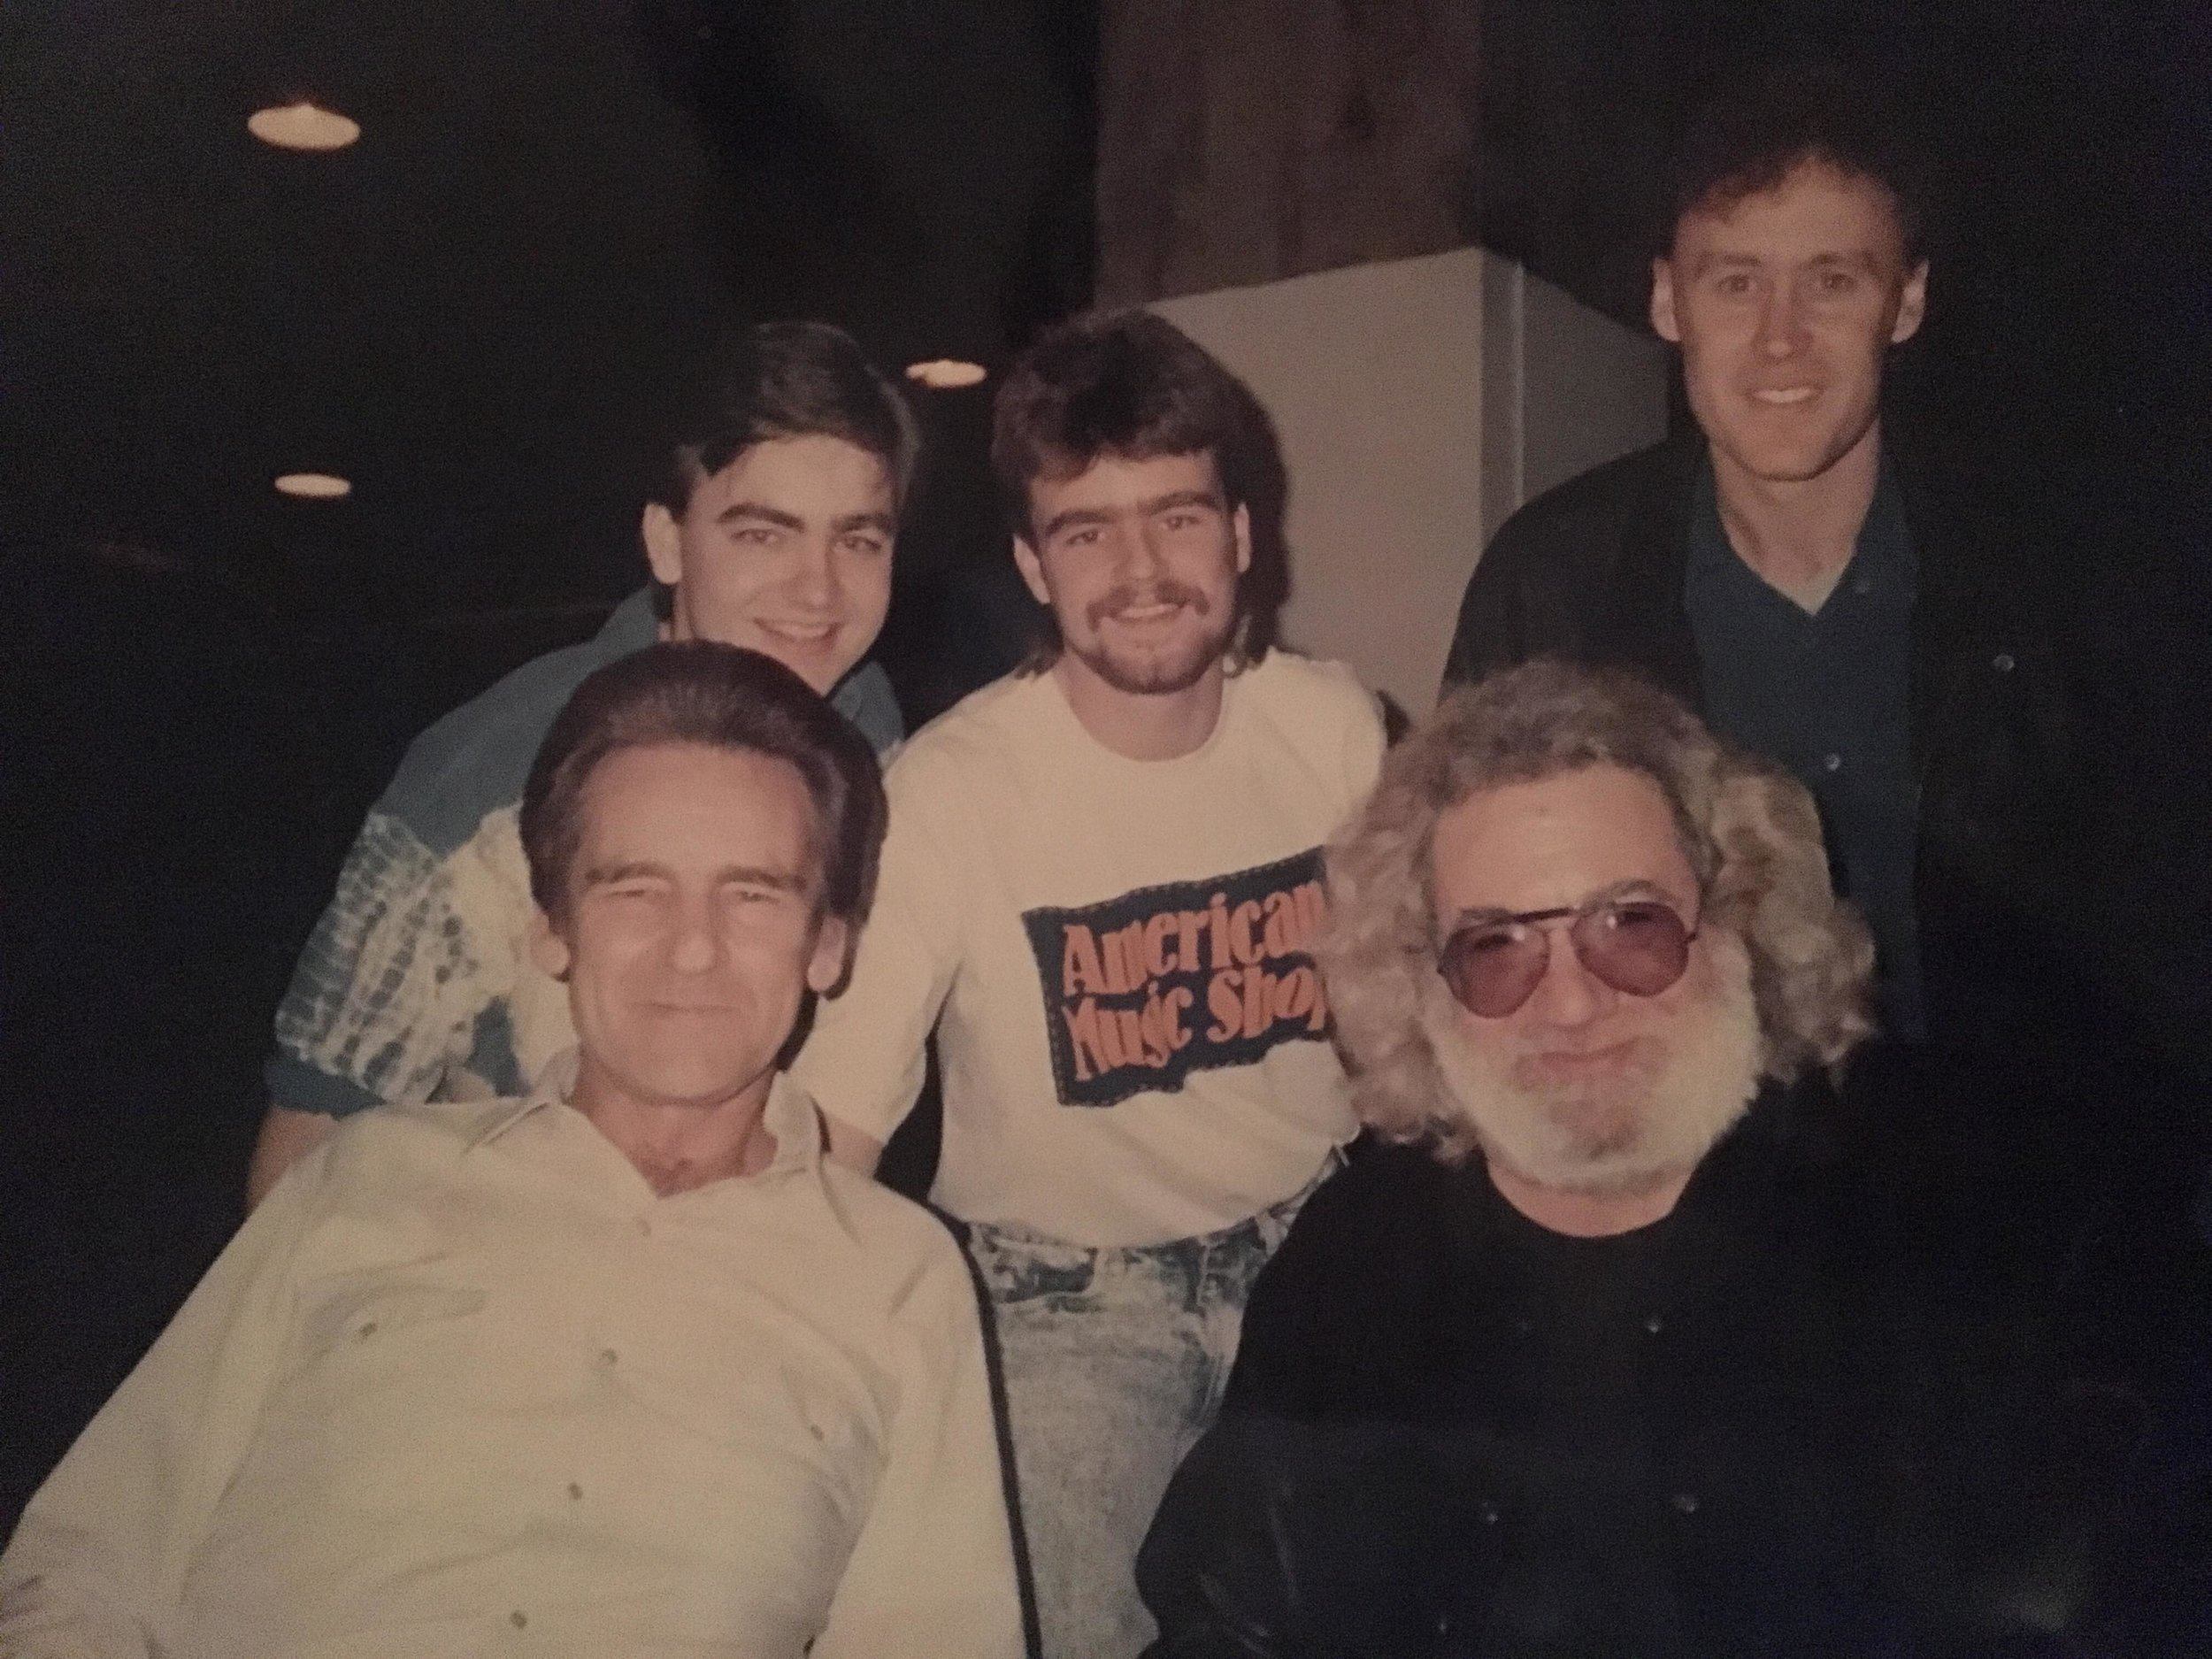 Back Row: Ronnie McCoury, Robbie McCoury, Bruce Hornsby Front Row: Del McCoury, Jerry Garcia Photo by Allison McCoury Published w/ permission from Allison McCoury